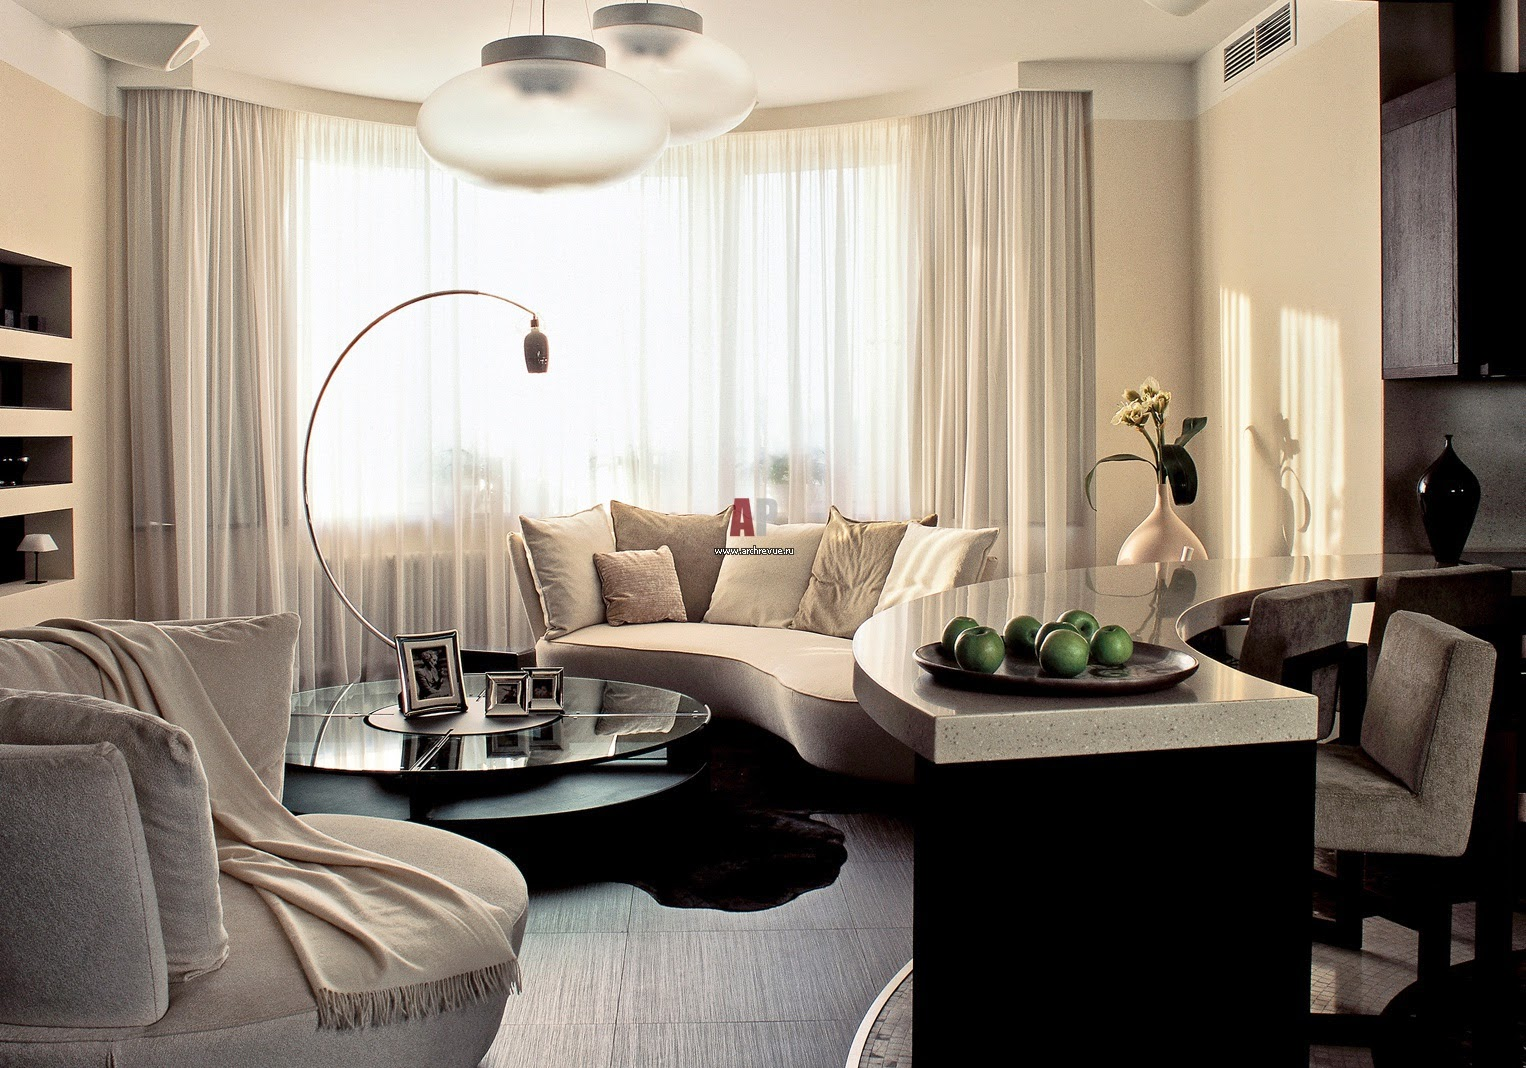 Top designs for modern style